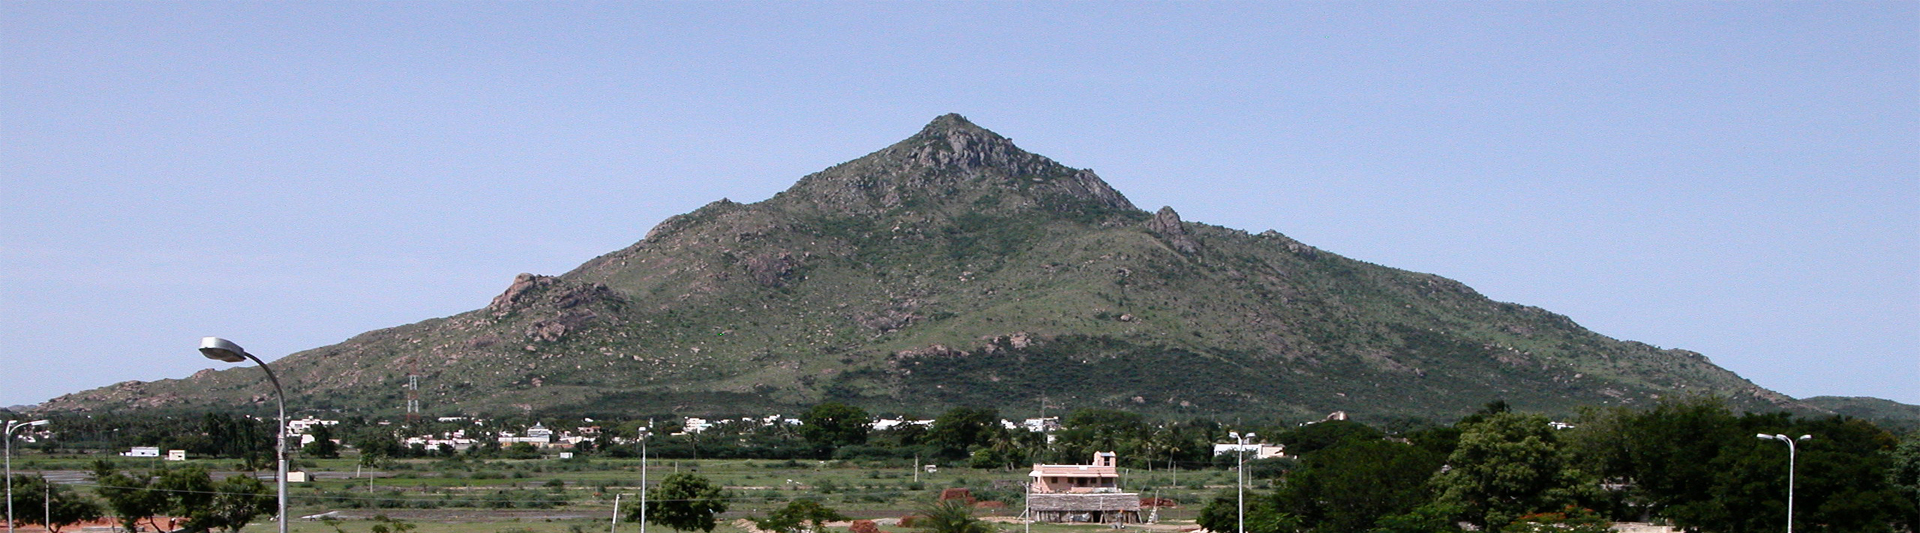 TIRUVANNAMALAI HILL